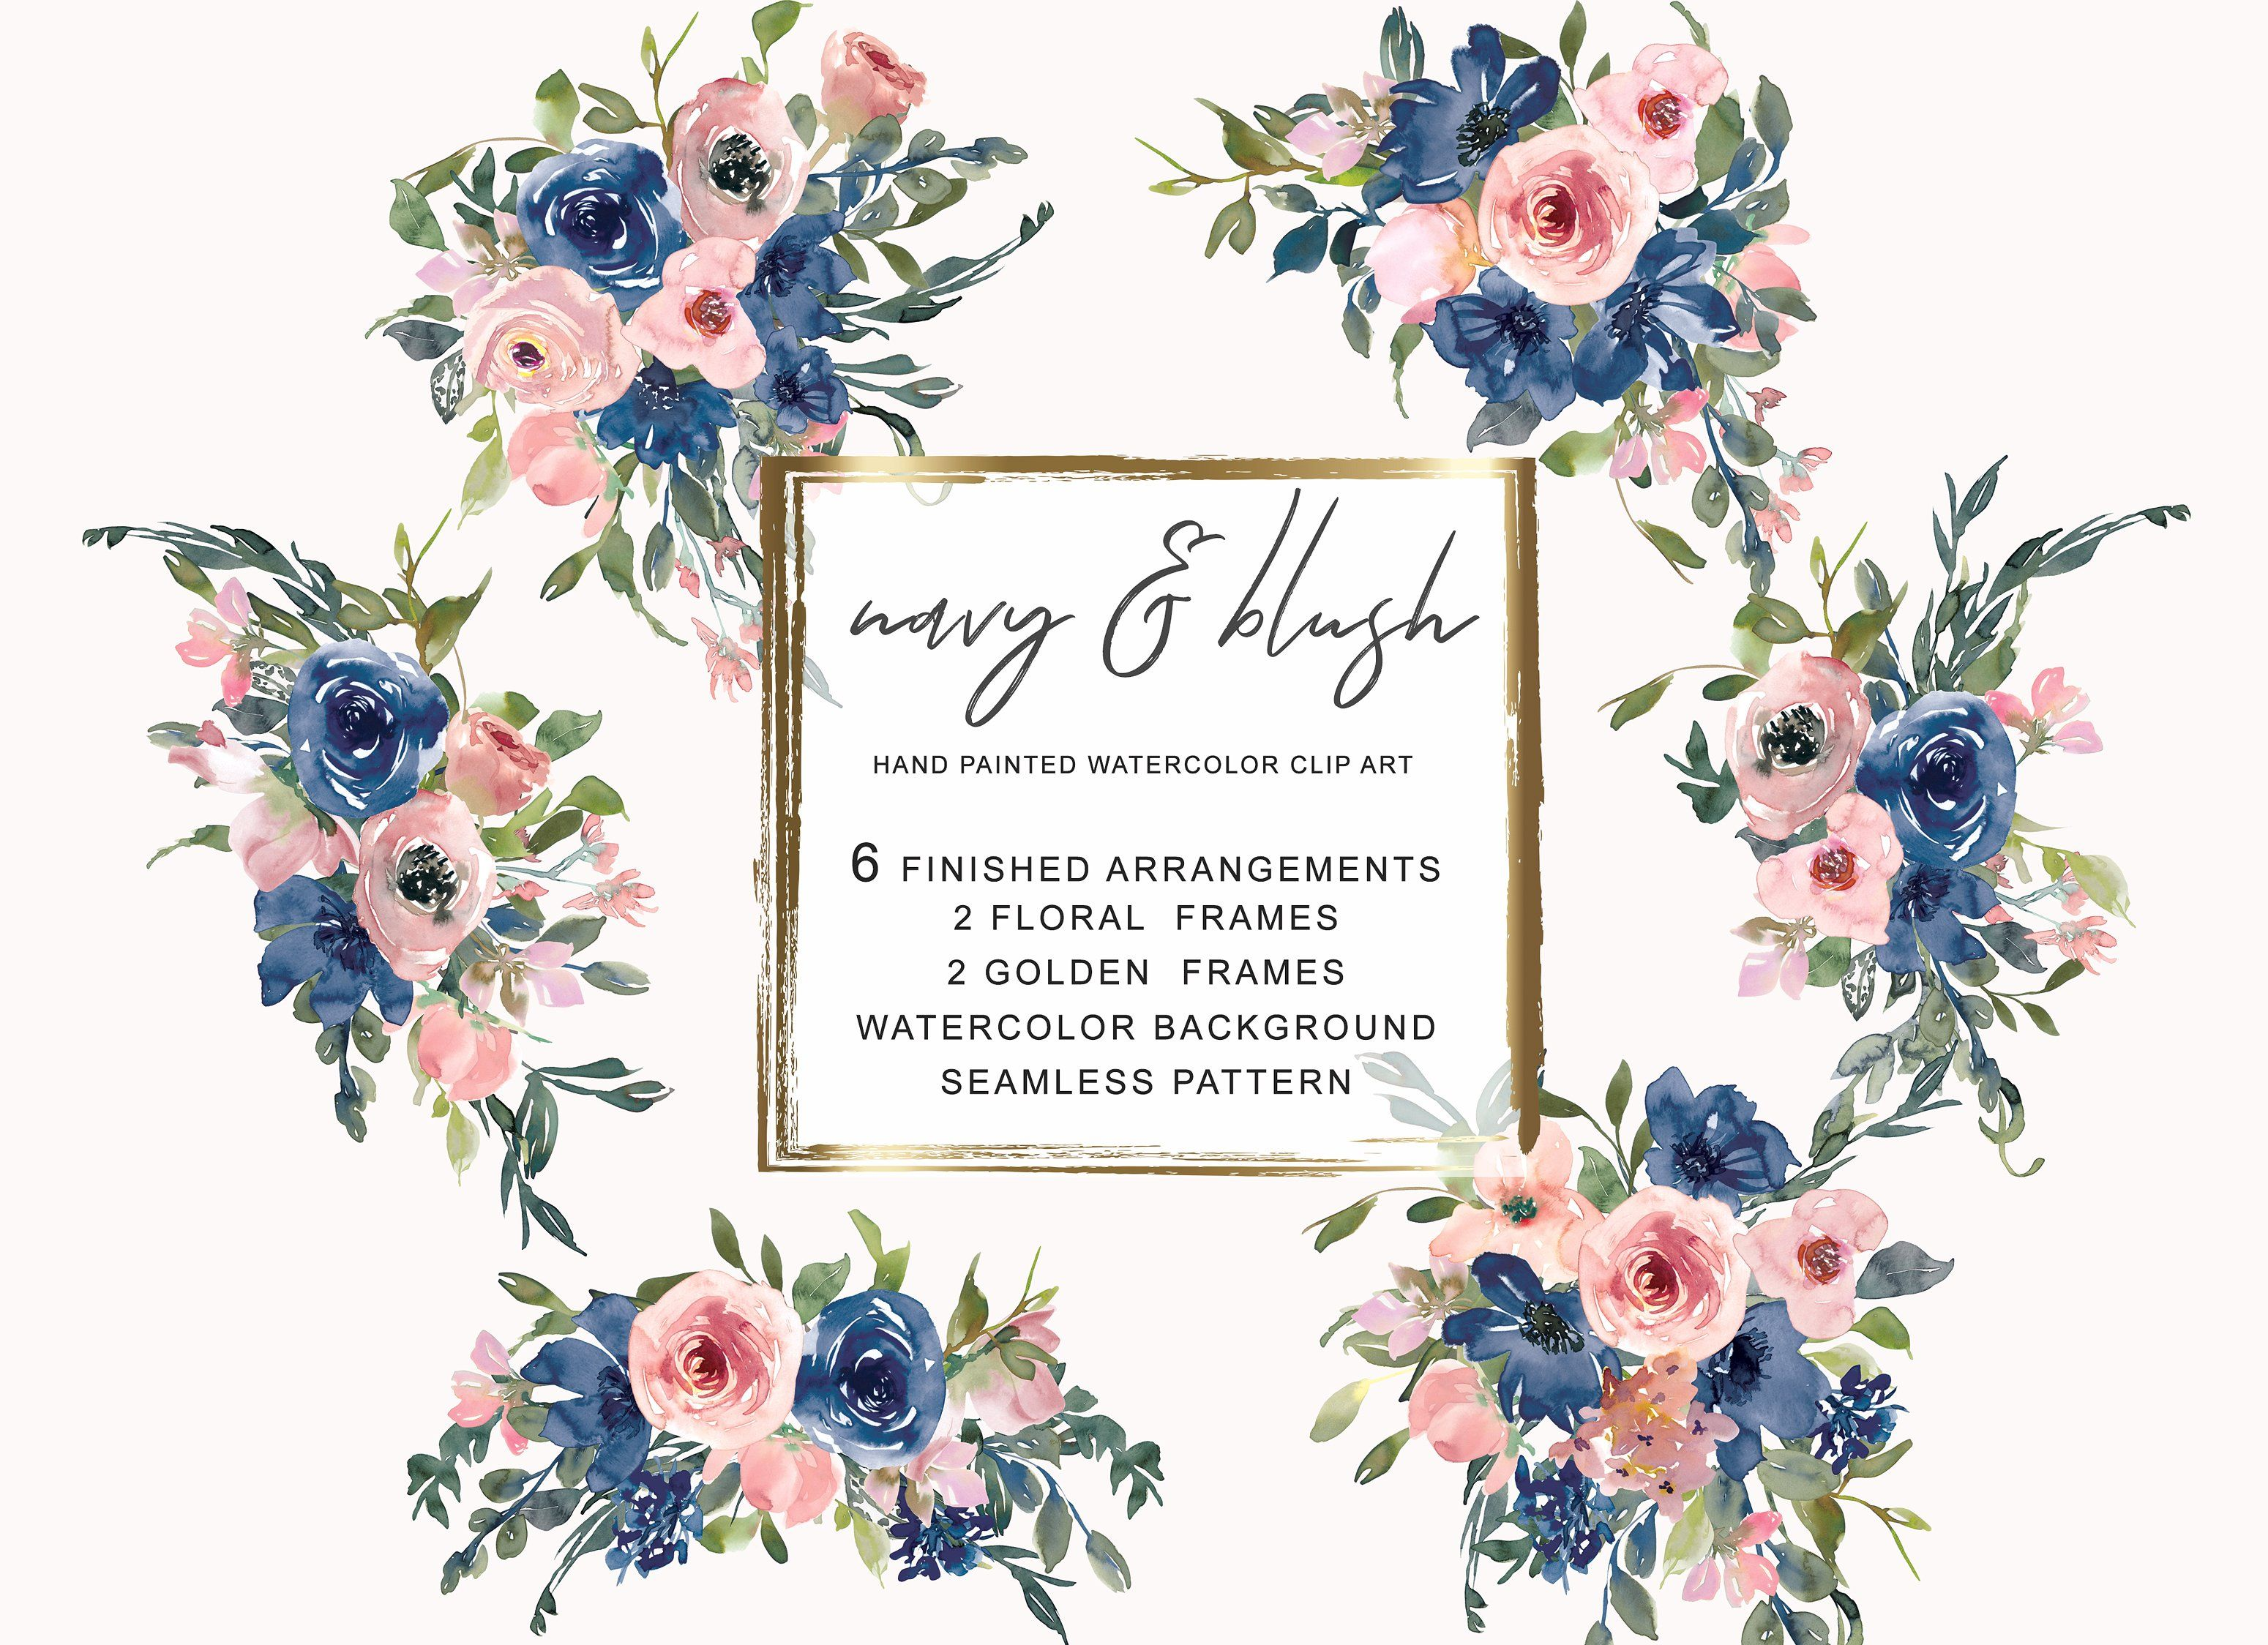 Watercolor Navy and Blush Floral Bou #Ad , #sponsored.